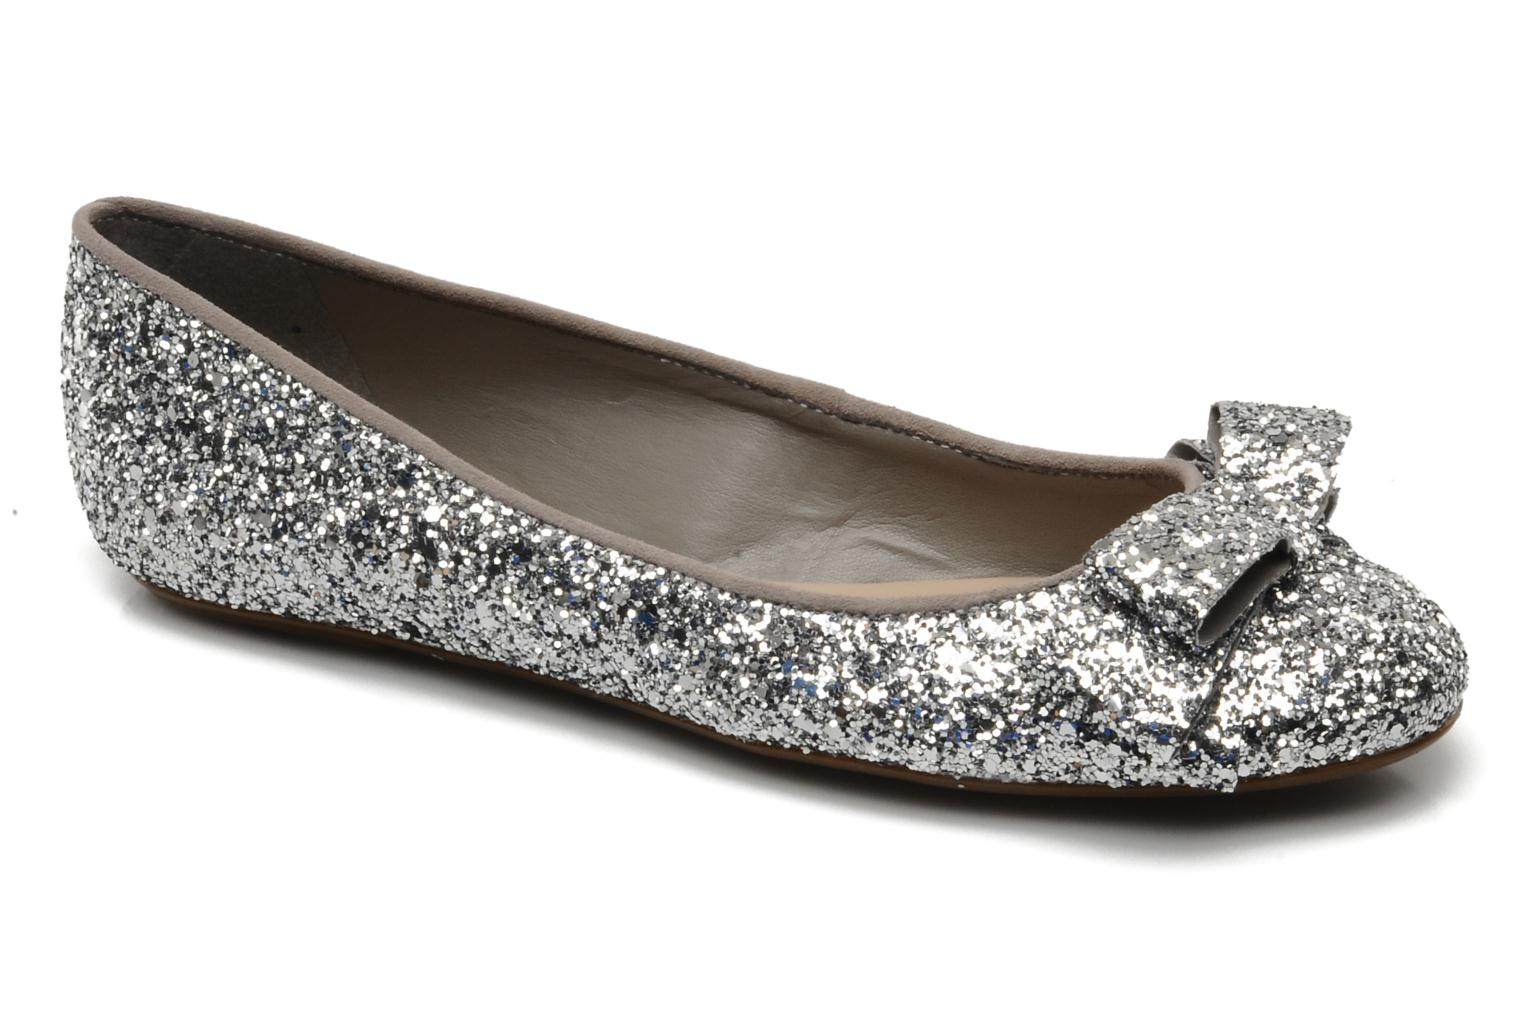 Carvela Lolly Silver Ballet Pumps Chez Sarenza 83819